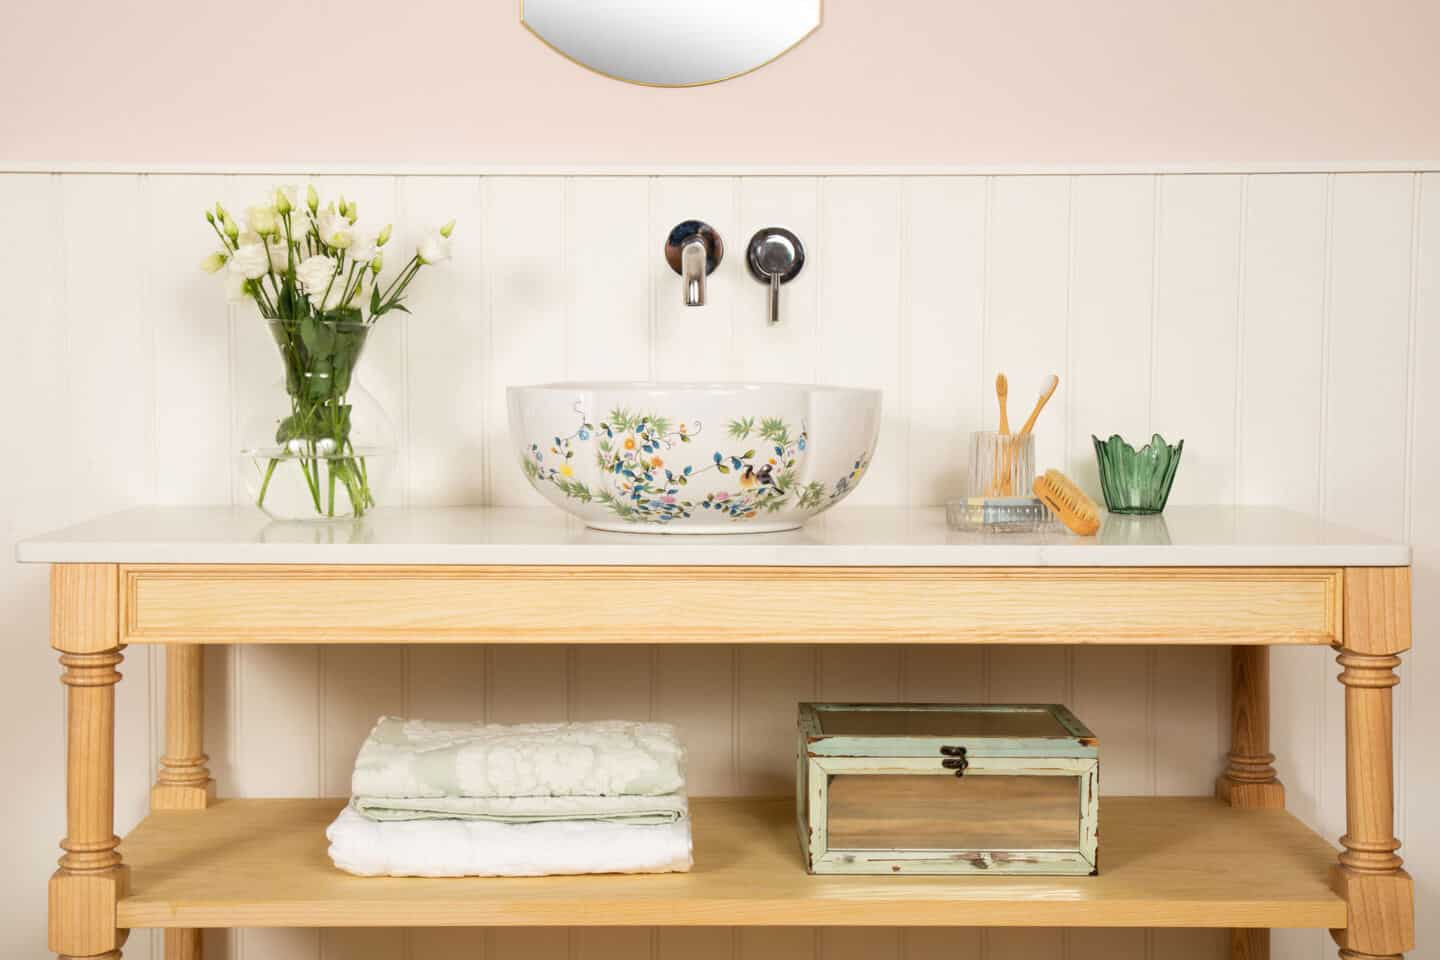 A round white bathroom basin with floral patterning rests on a wooden vanity unit